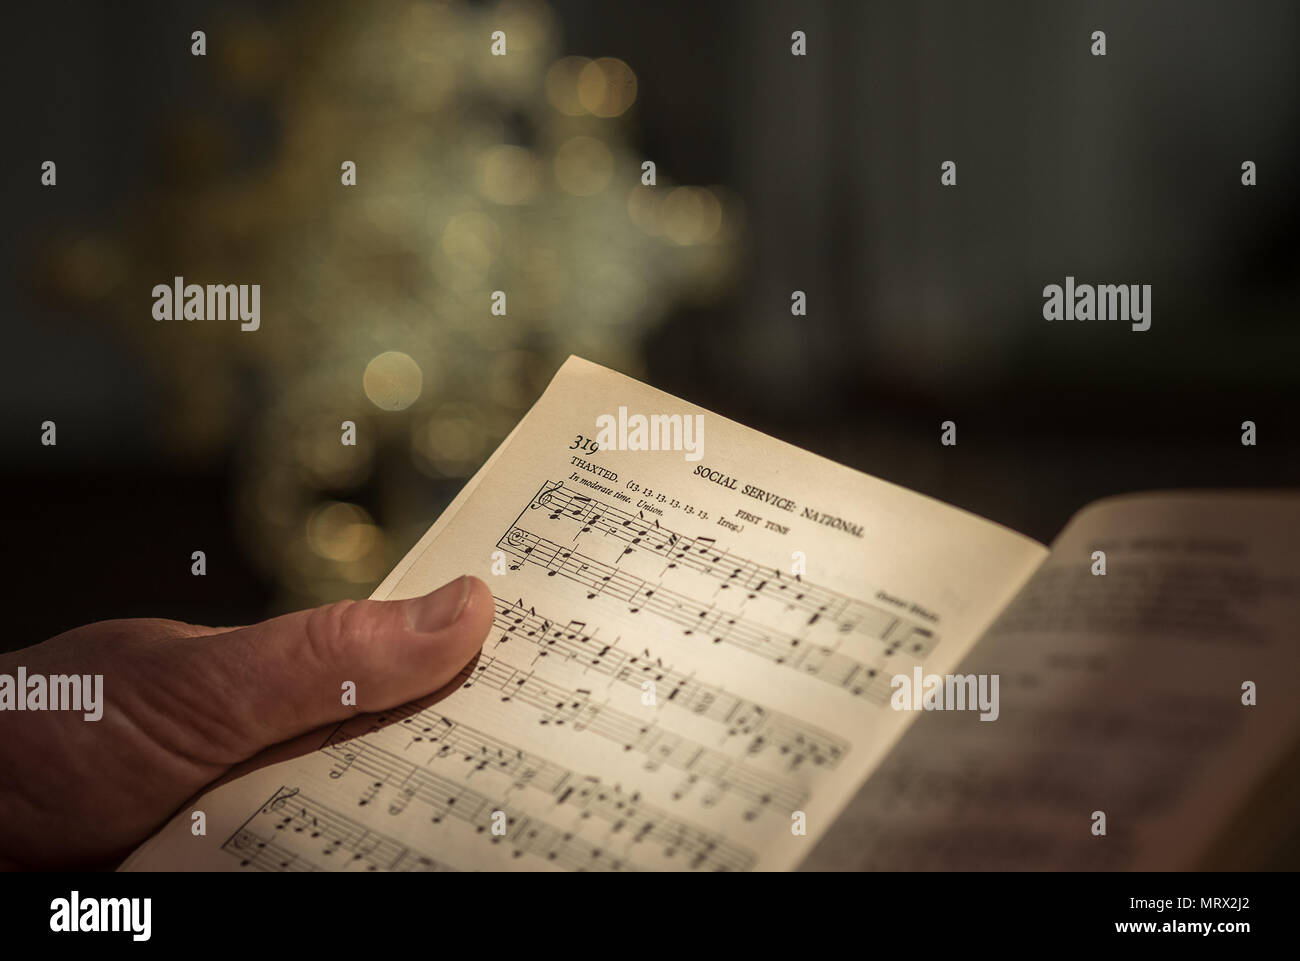 Hymn book music for I Vow to Thee My Country by Holst, also